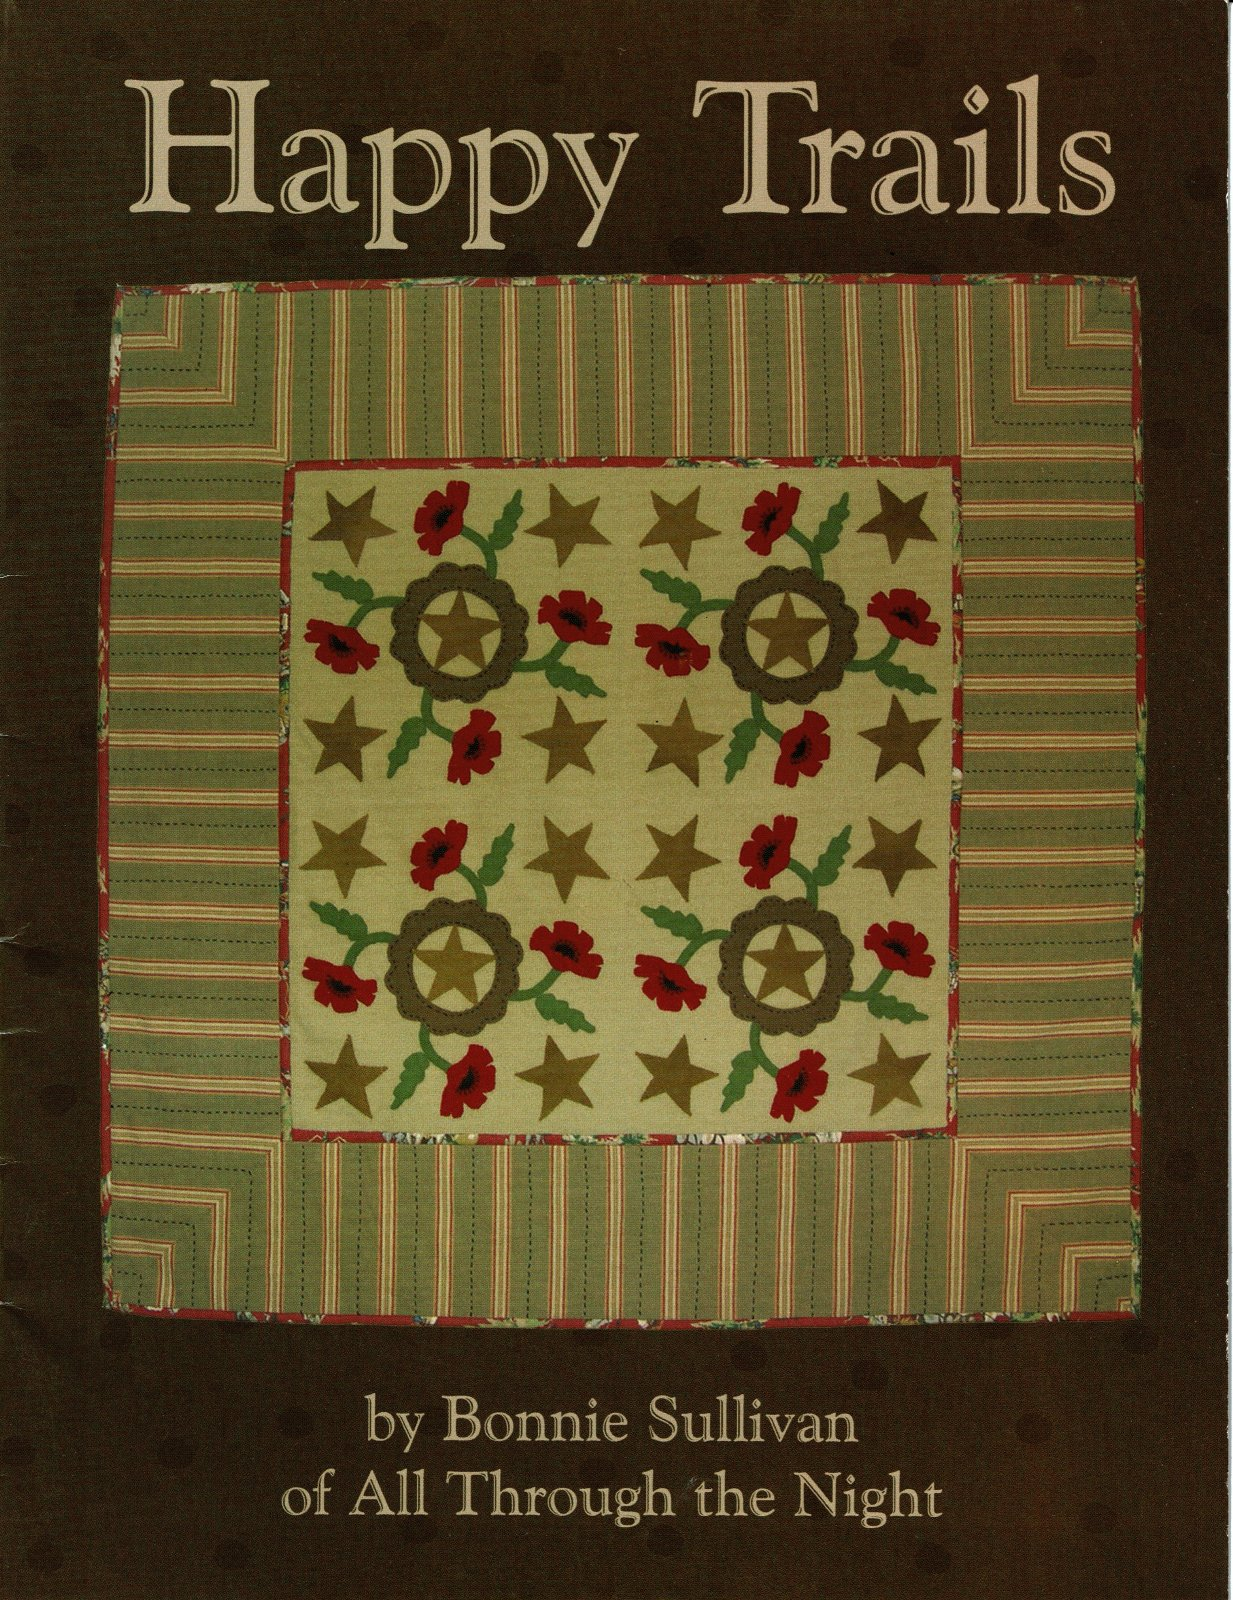 Happy Trails by Bonnie Sullivan (book)